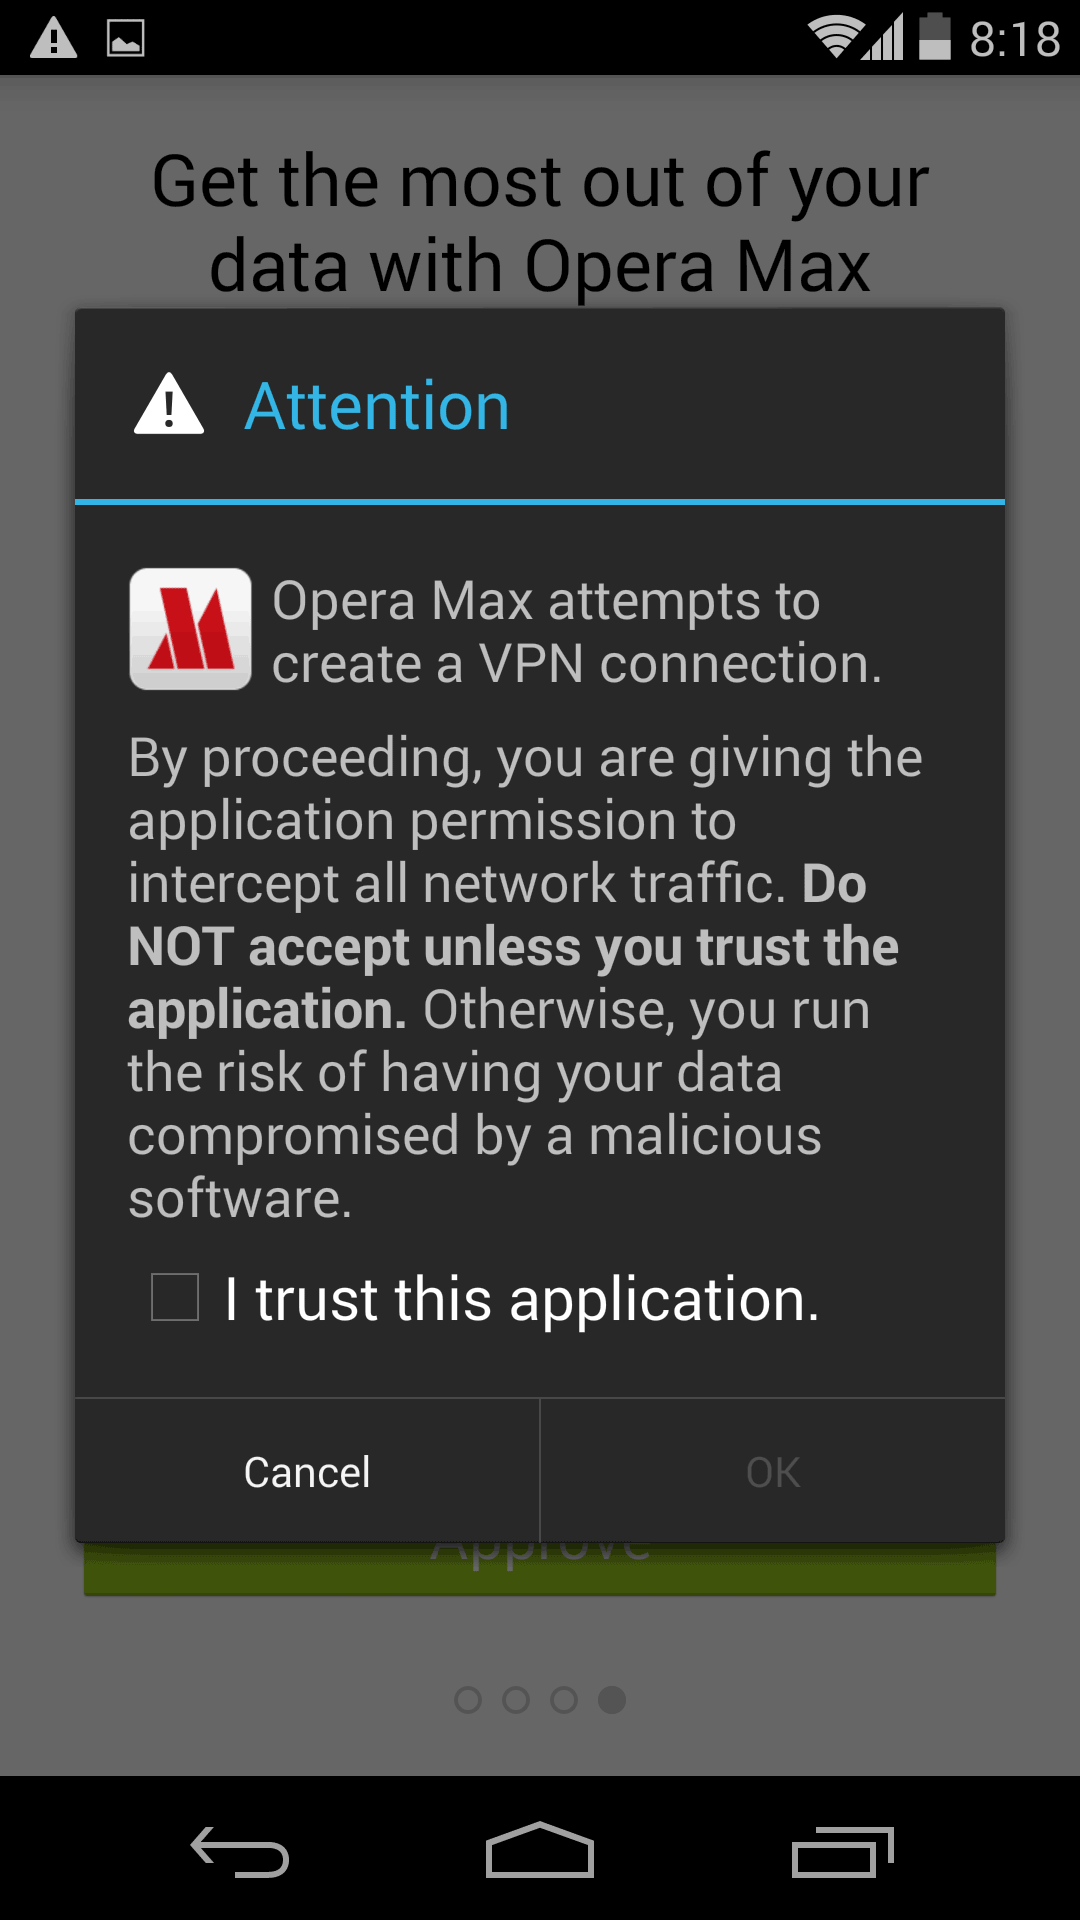 Opera Max needs to establish a virtual private network (VPN) connection to work, and Android makes sure you really want to give it permission.